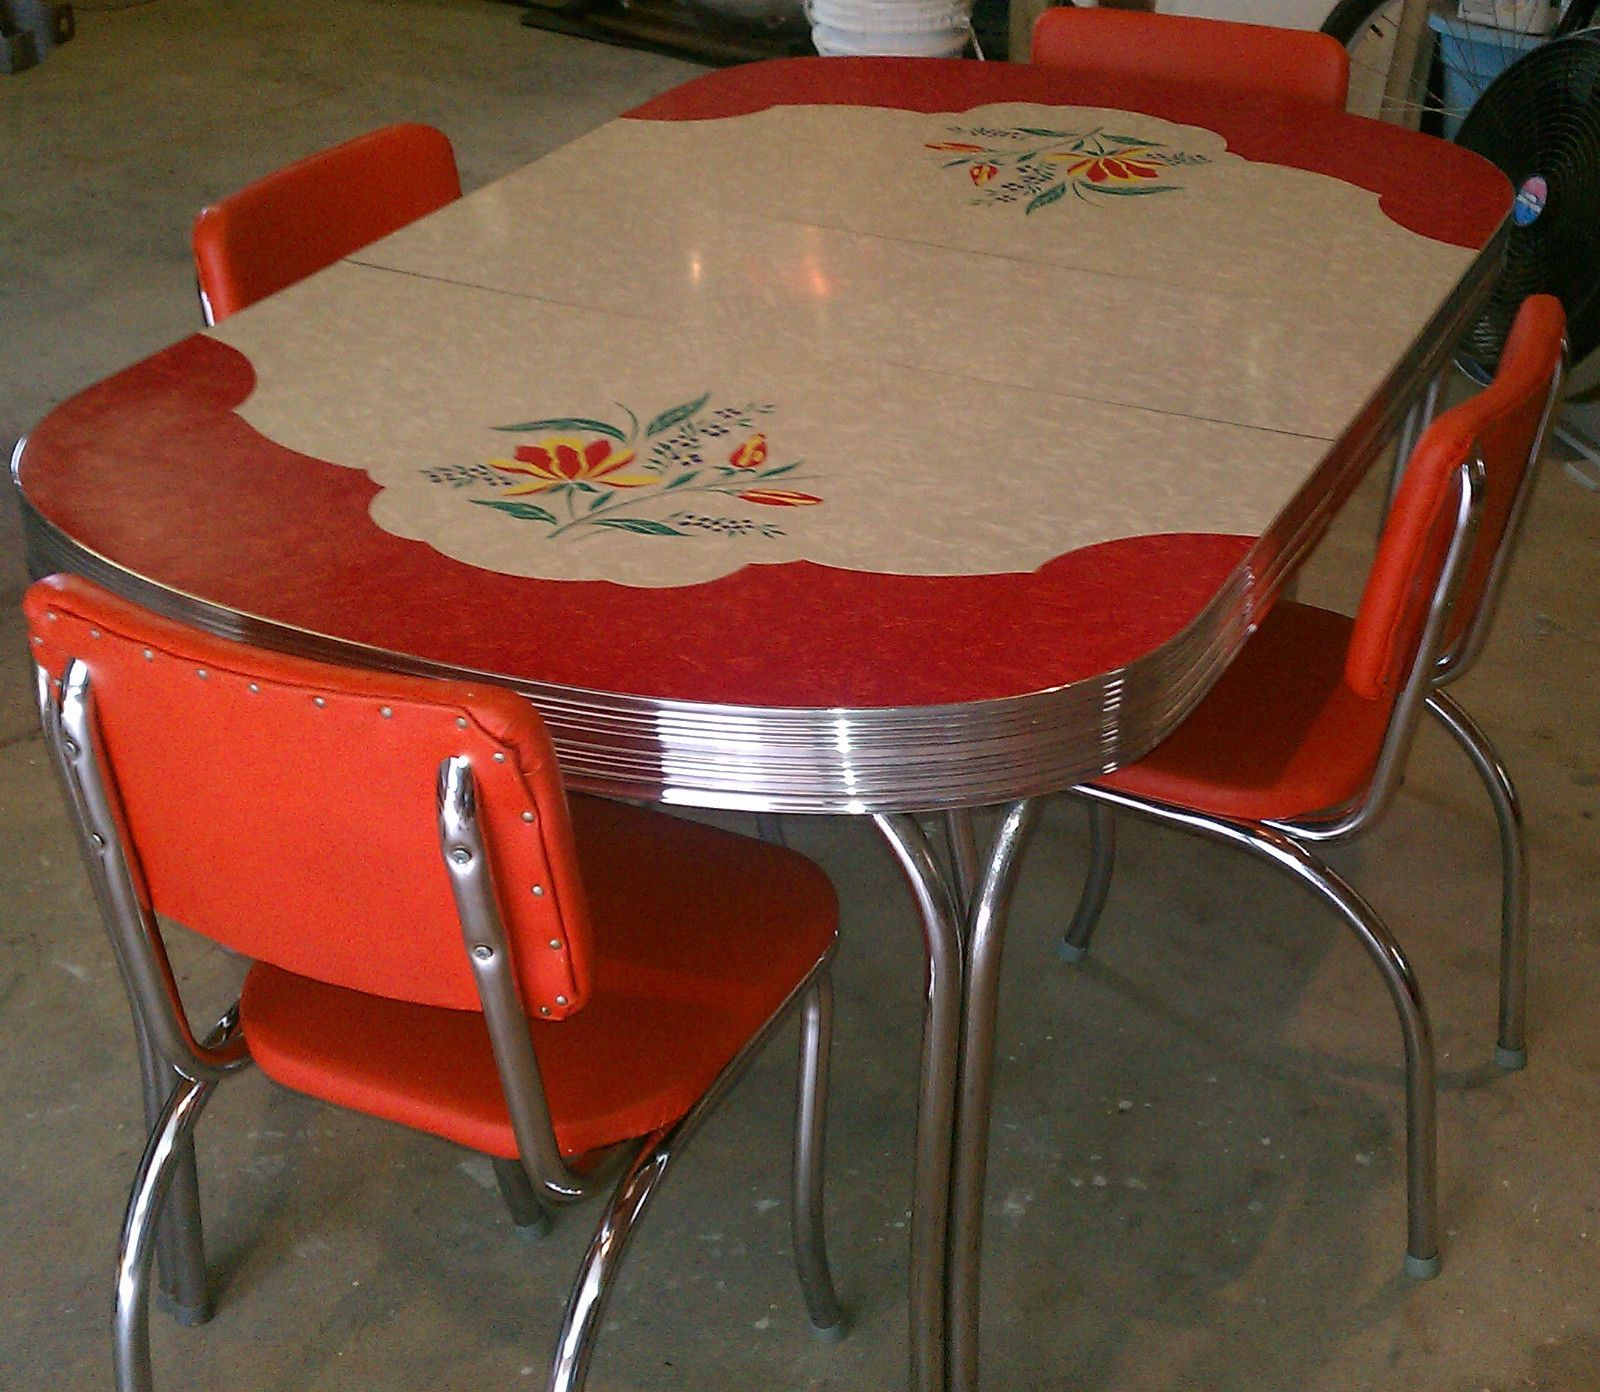 love this table  vintage kitchen formica table 4 chairs chrome orange red white gray vintage kitchen formica table 4 chairs chrome orange red white      rh   pinterest com